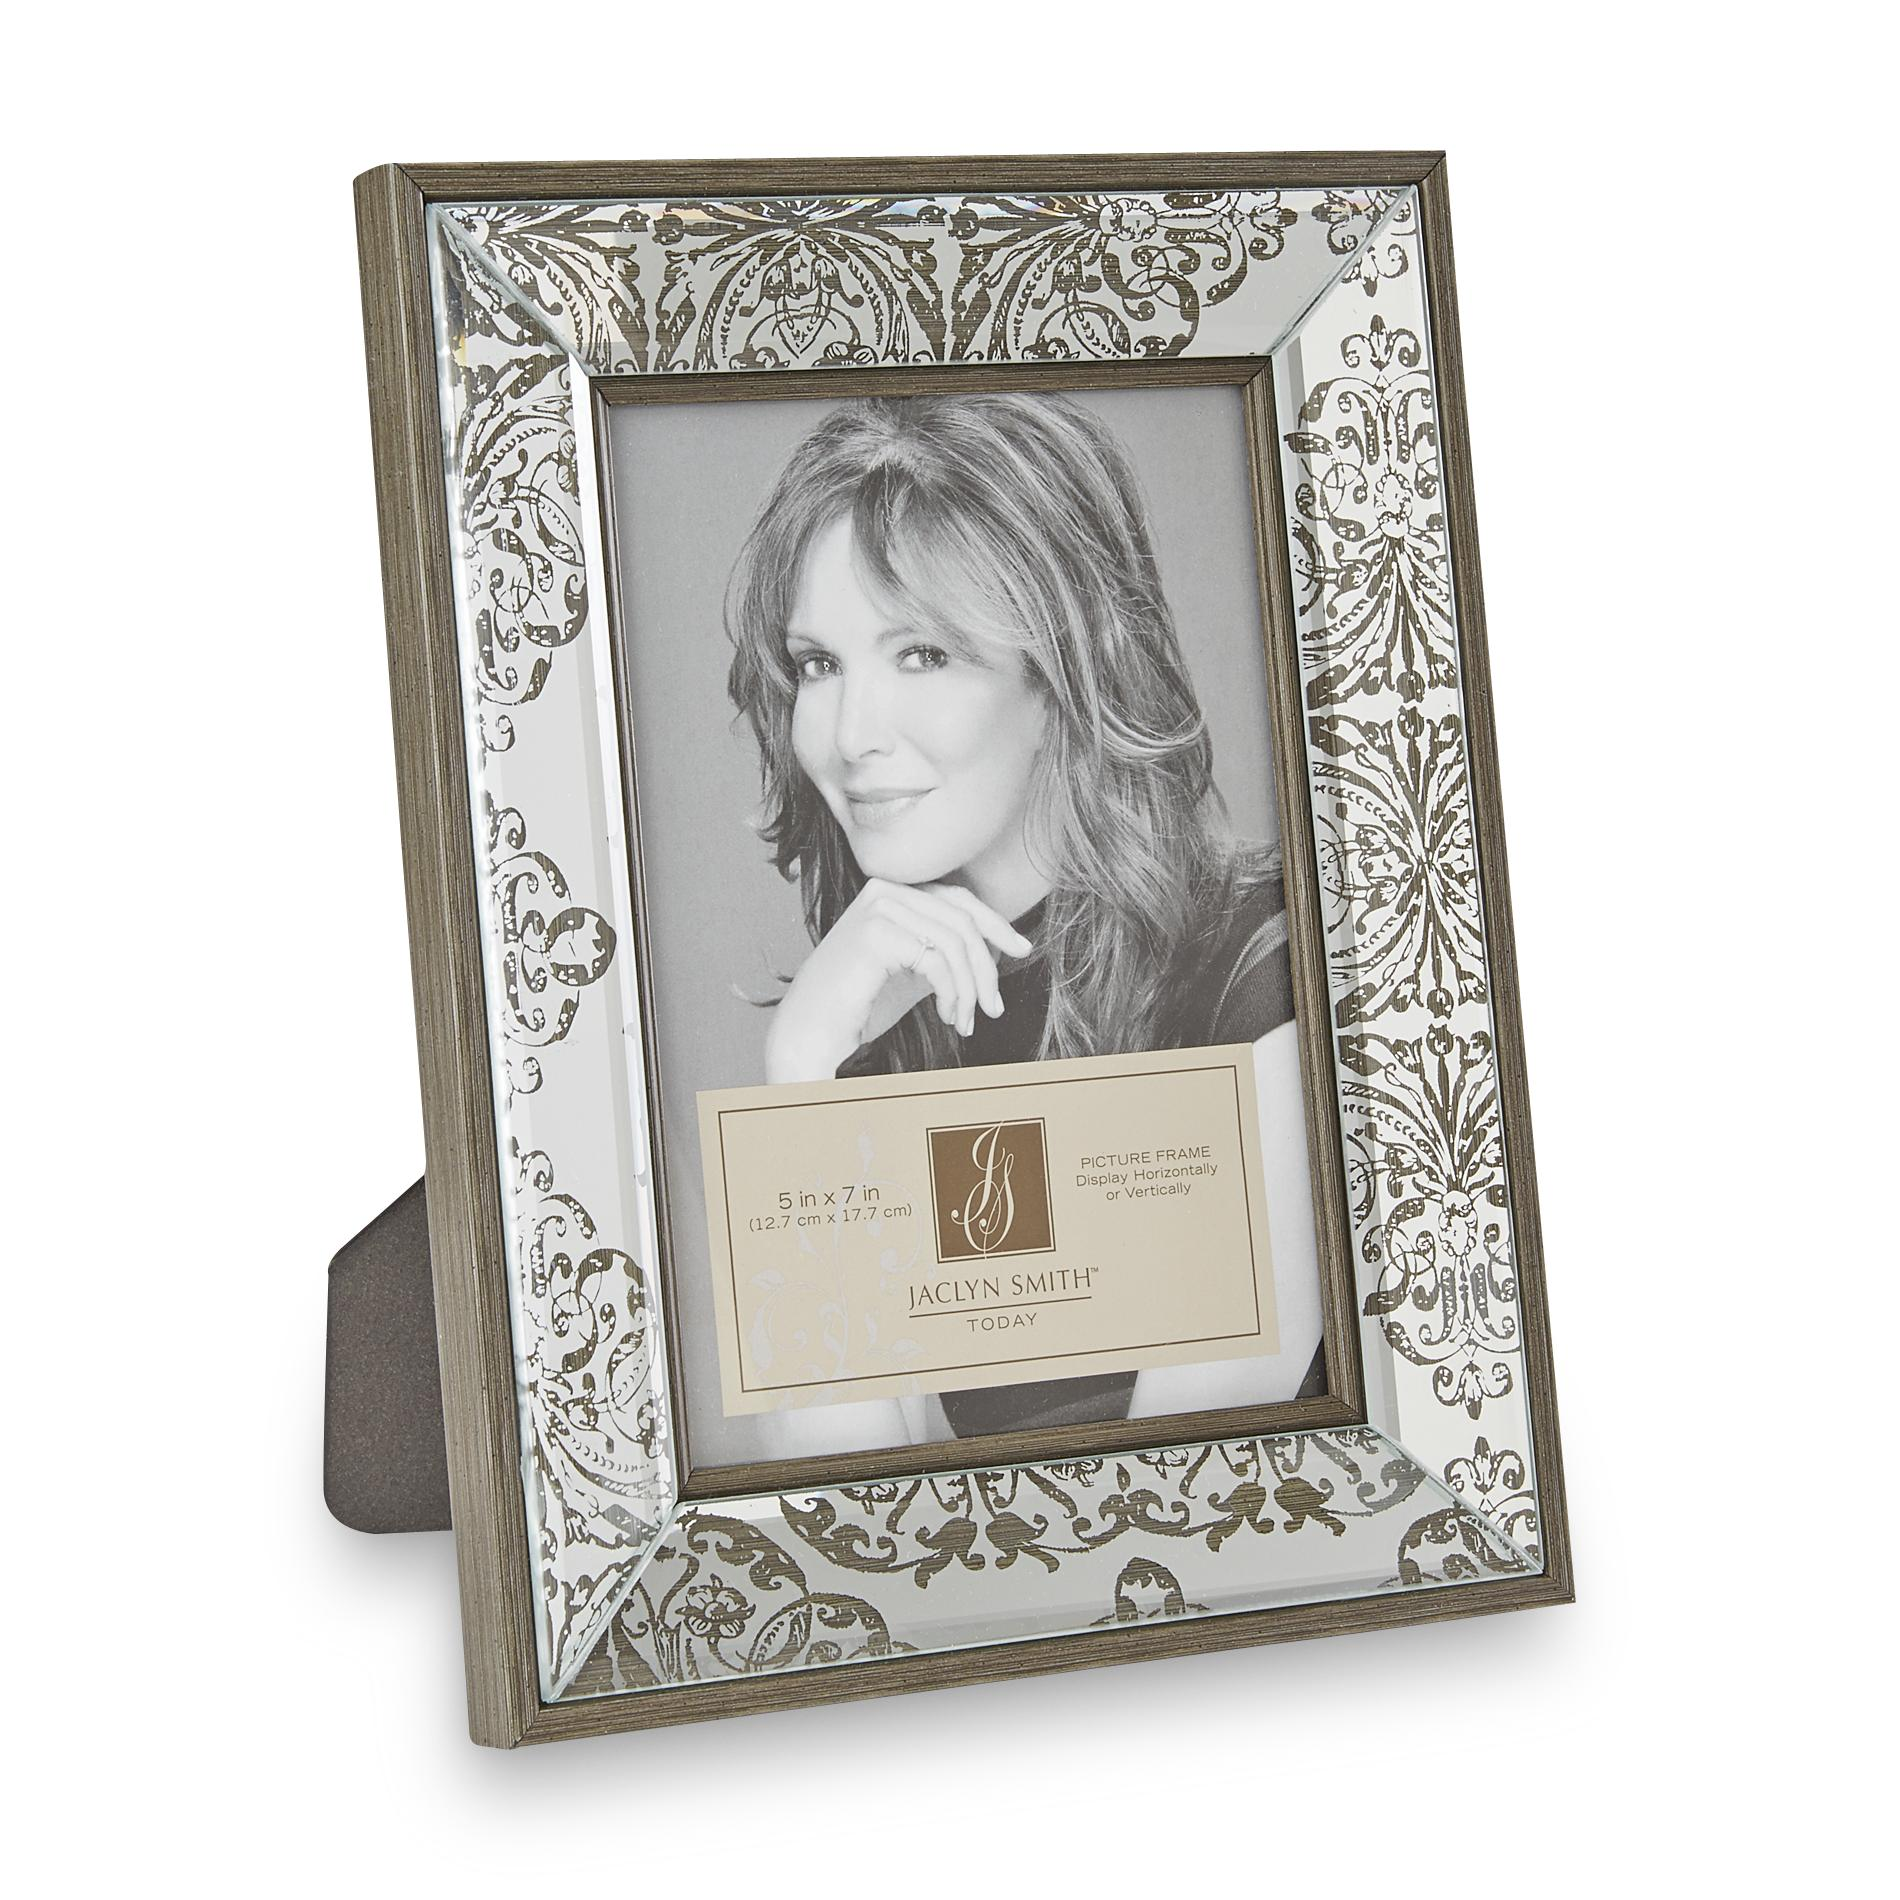 Mirrored Picture Frames Jaclyn Smith 5 Quot X 7 Quot Mirrored Picture Frame